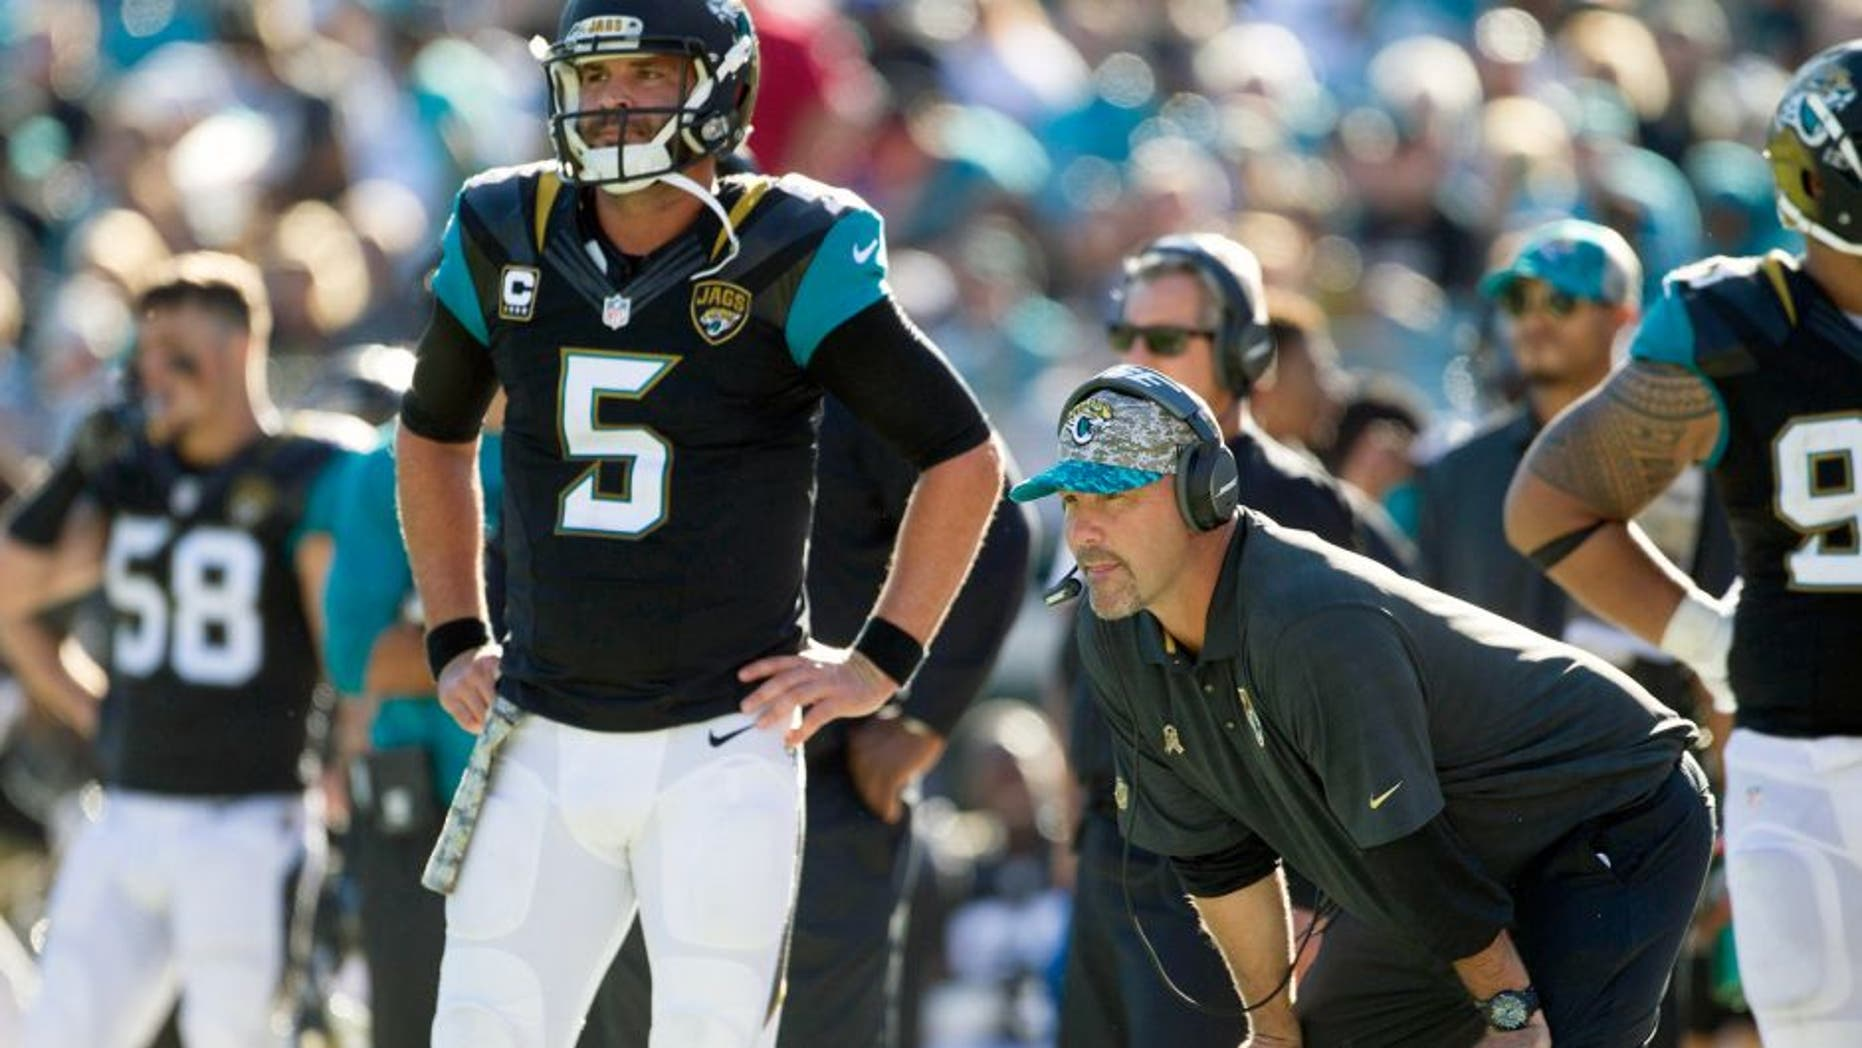 Nov 29, 2015; Jacksonville, FL, USA; Jacksonville Jaguars quarterback Blake Bortles (5) and head coach Gus Bradley look on during the third quarter against the San Diego Chargers at EverBank Field. The San Diego Chargers won 31-25. Mandatory Credit: Logan Bowles-USA TODAY Sports